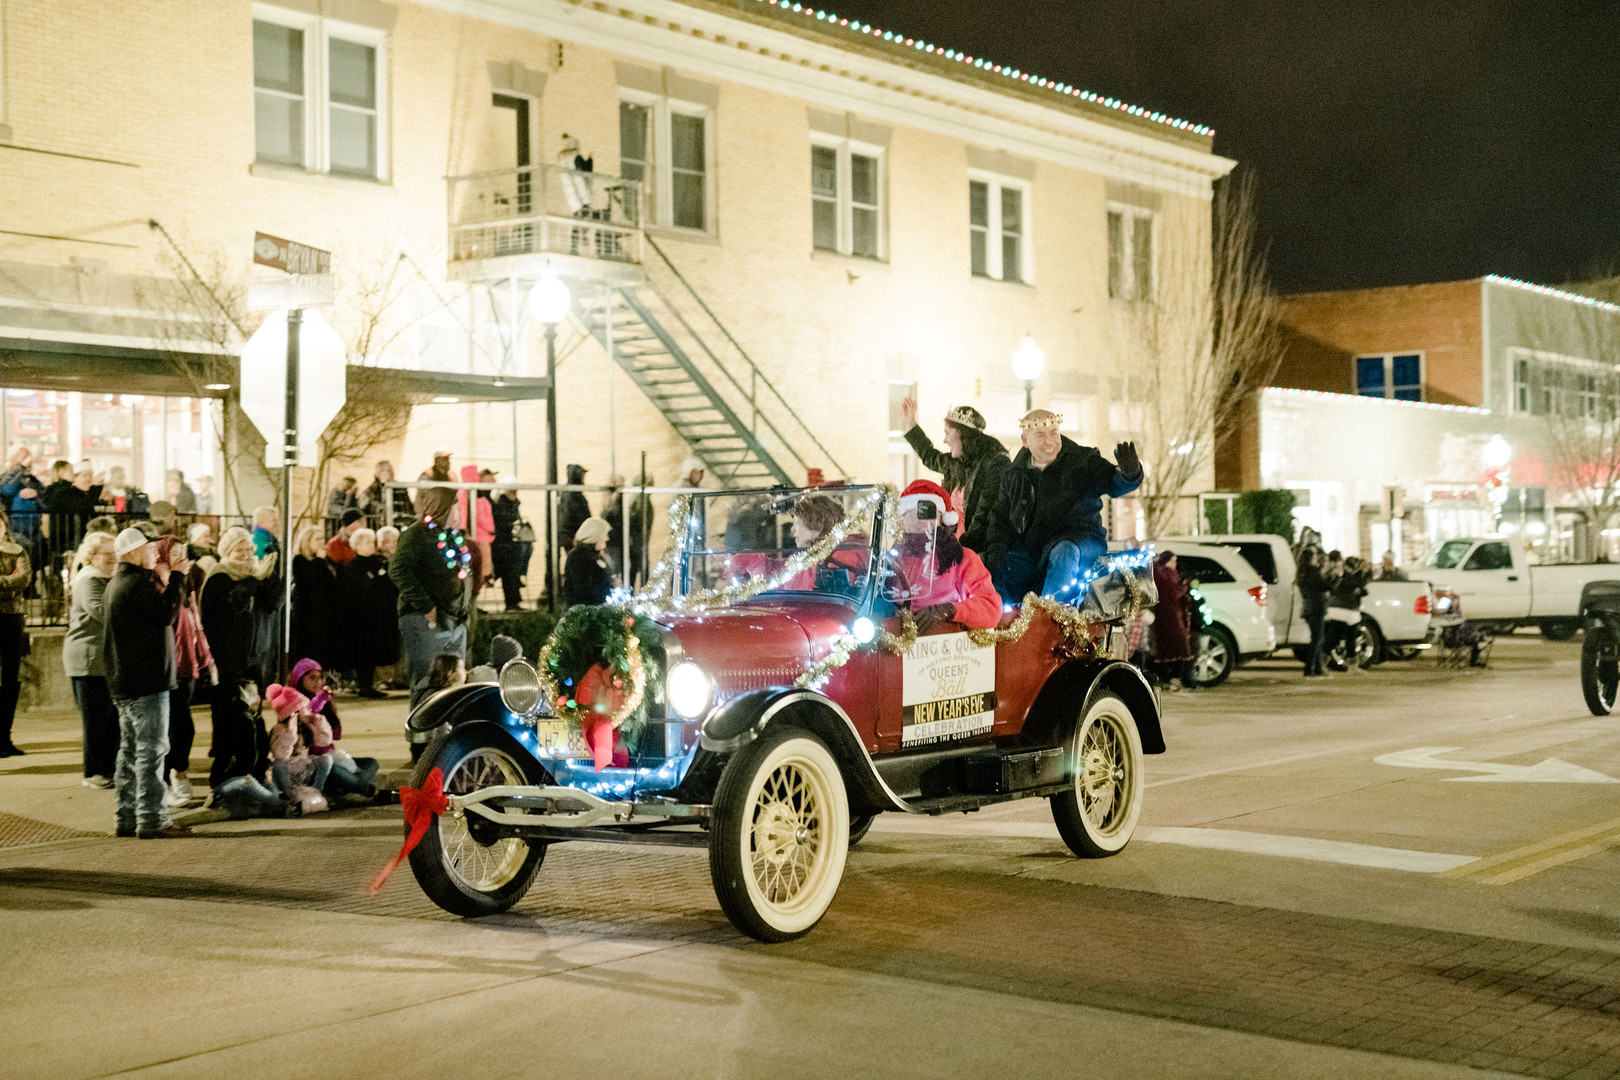 Downtown-Bryan-Christmas-Parade-2018-11.